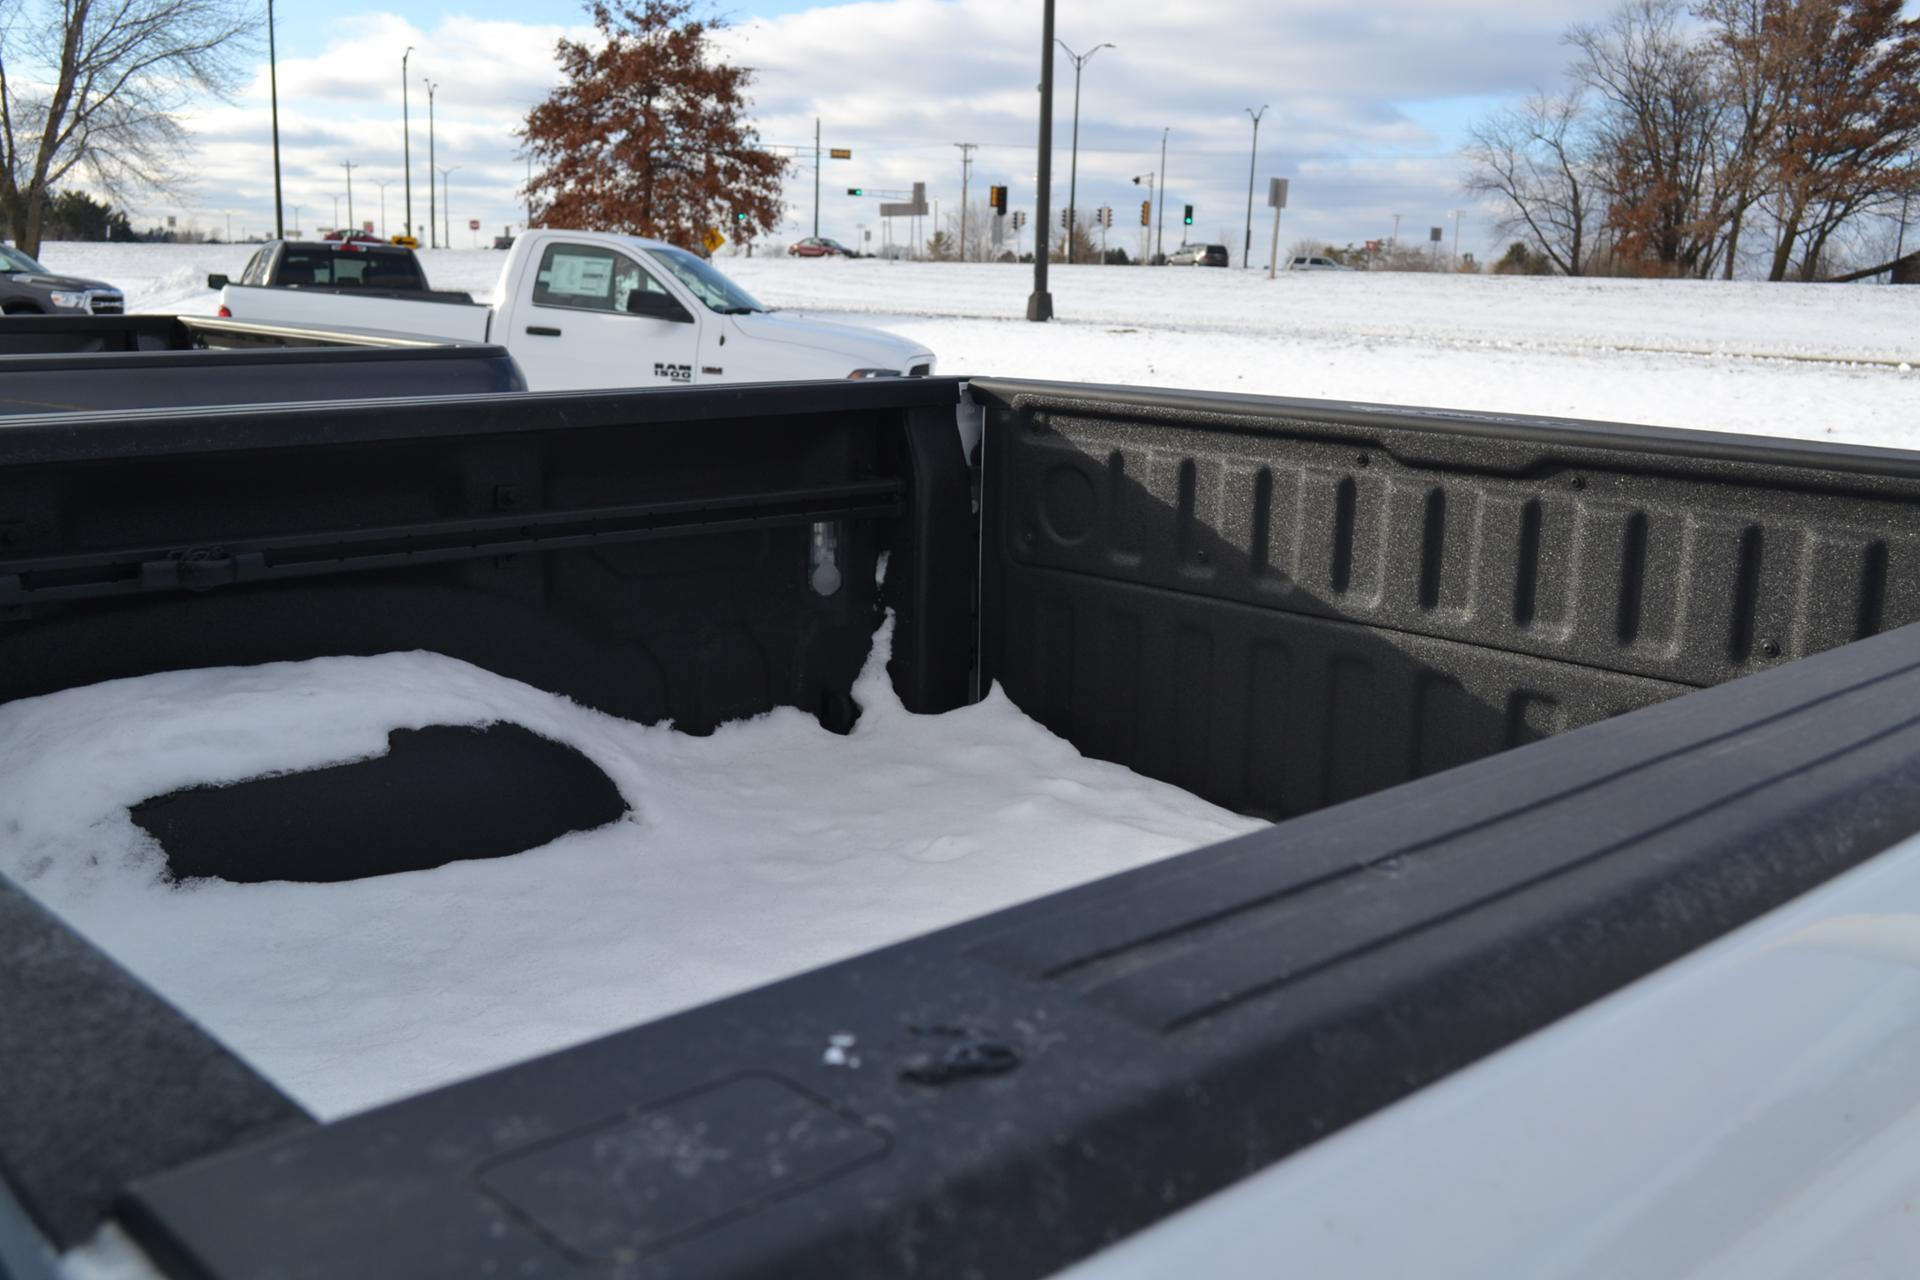 2019 Ram 1500 Crew Cab 4x4,  Pickup #19-373 - photo 6